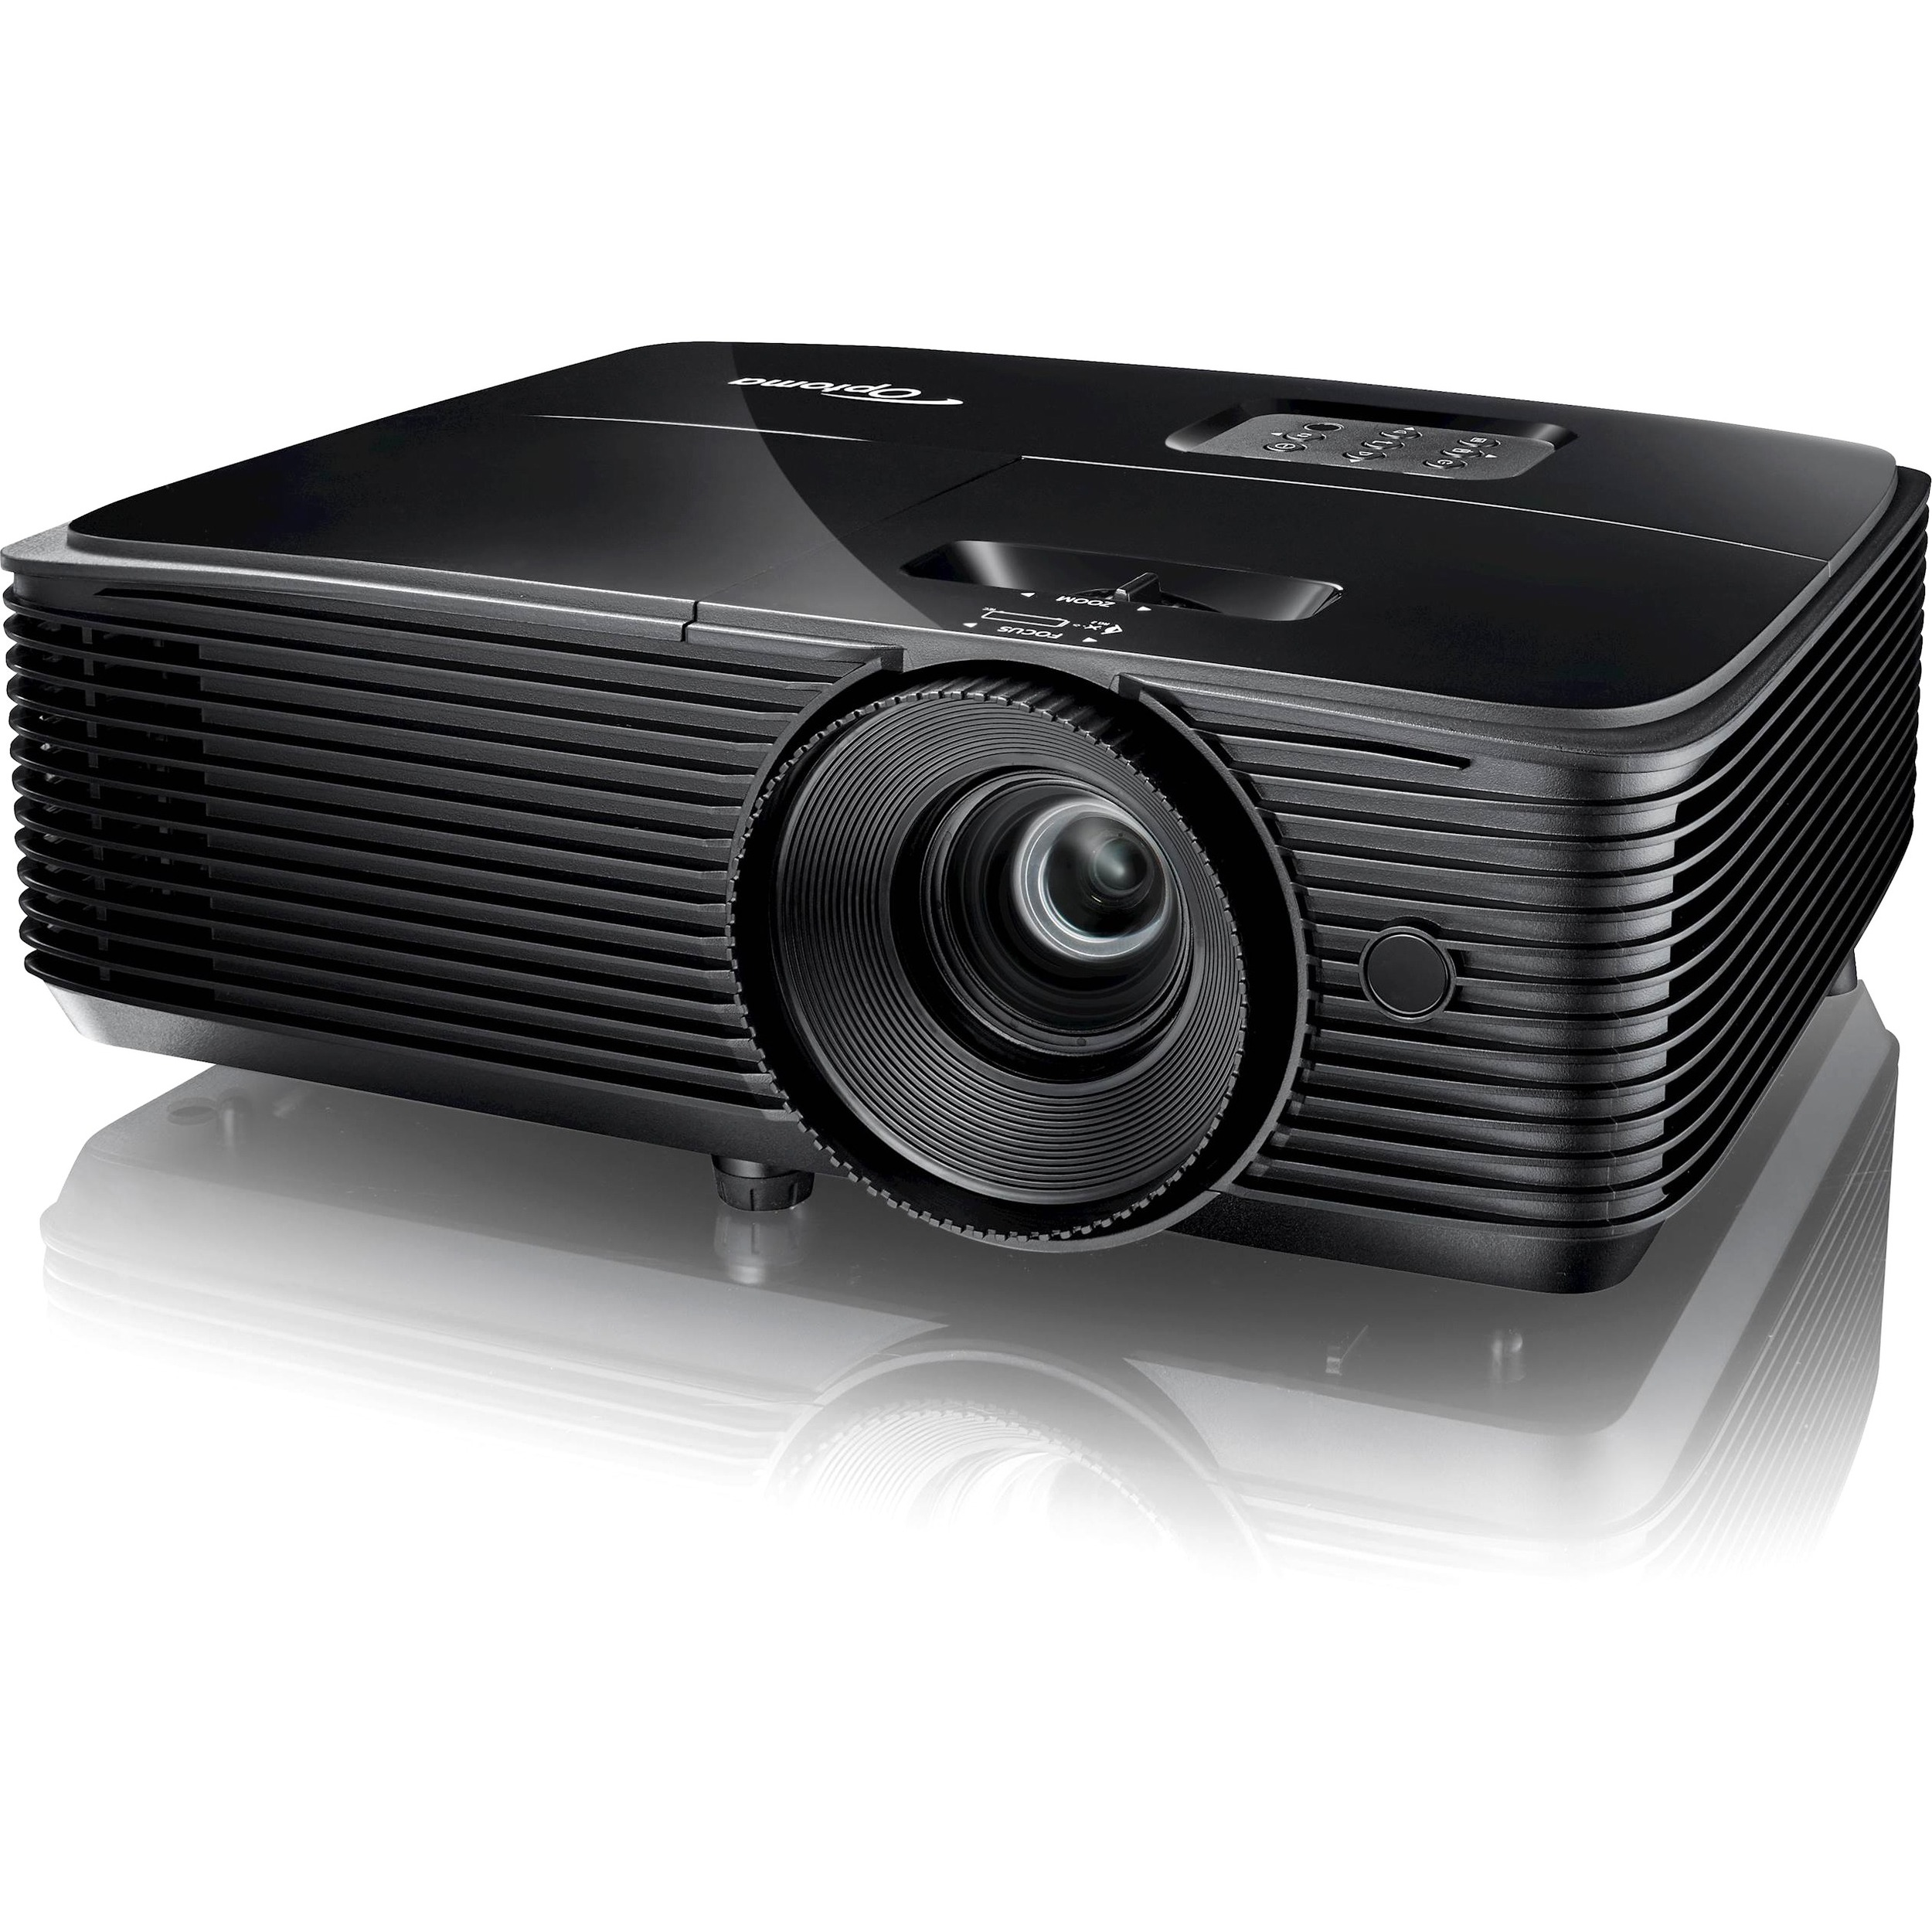 Optoma S334e 3D Ready DLP Projector - 4:3 - Black_subImage_1